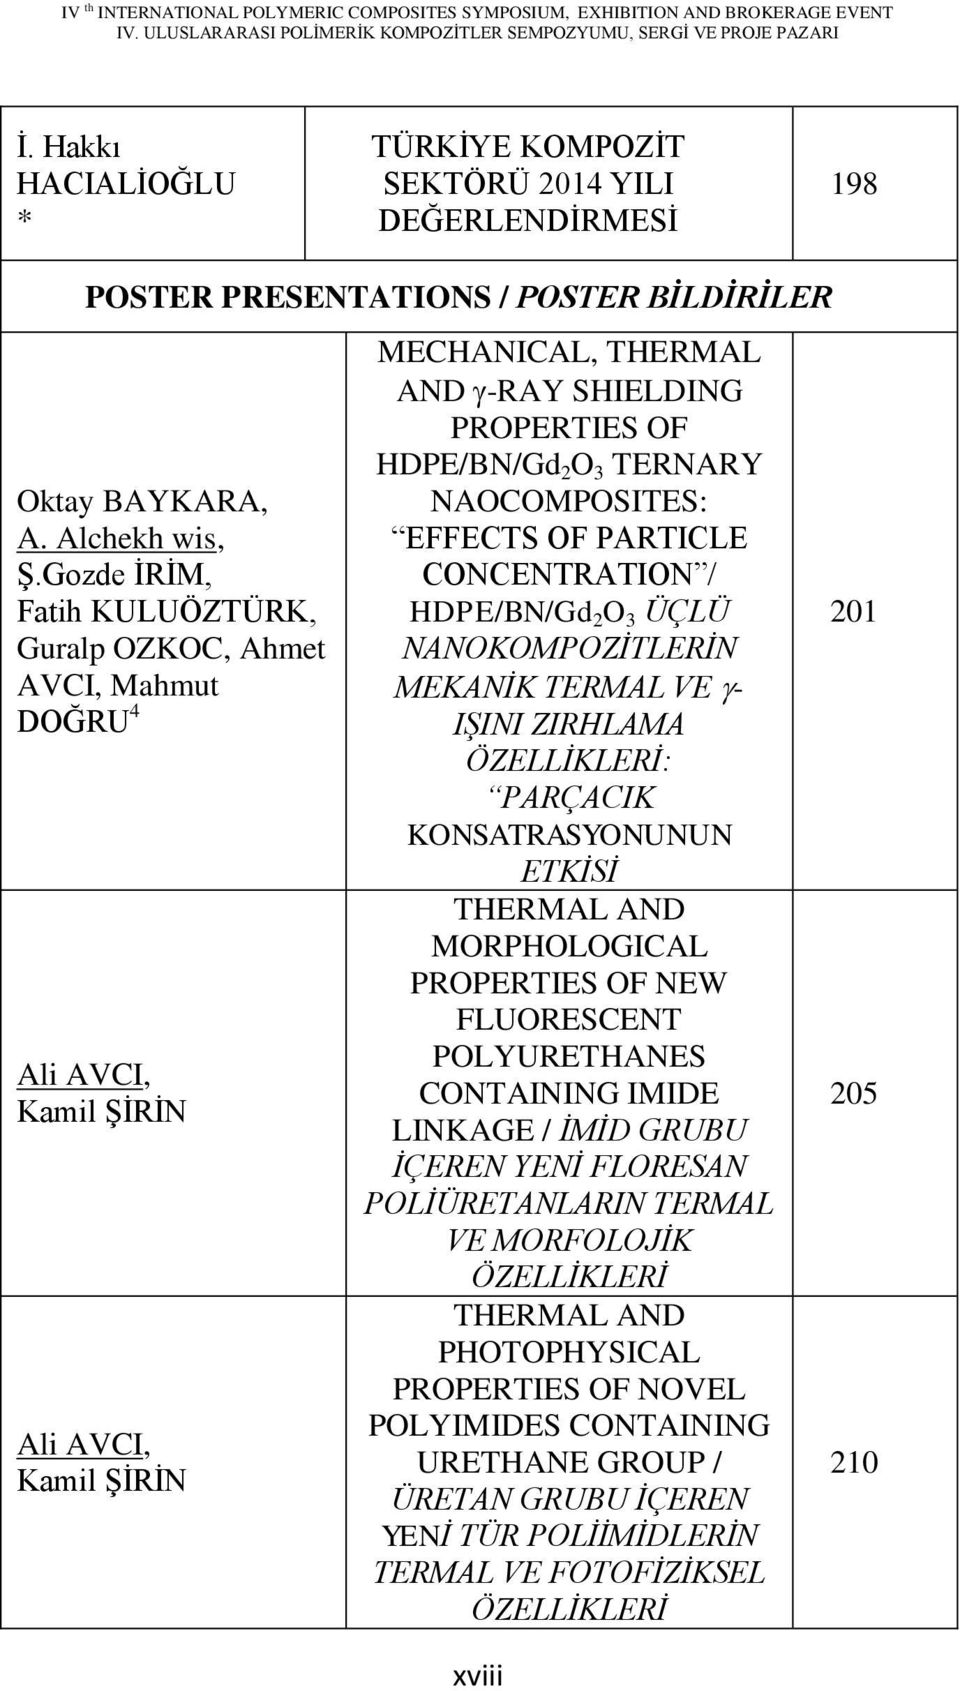 NAOCOMPOSITES: EFFECTS OF PARTICLE CONCENTRATION / HDPE/BN/Gd 2 O 3 ÜÇLÜ NANOKOMPOZĠTLERĠN MEKANĠK TERMAL VE - IġINI ZIRHLAMA ÖZELLĠKLERĠ: PARÇACIK KONSATRASYONUNUN ETKĠSĠ THERMAL AND MORPHOLOGICAL